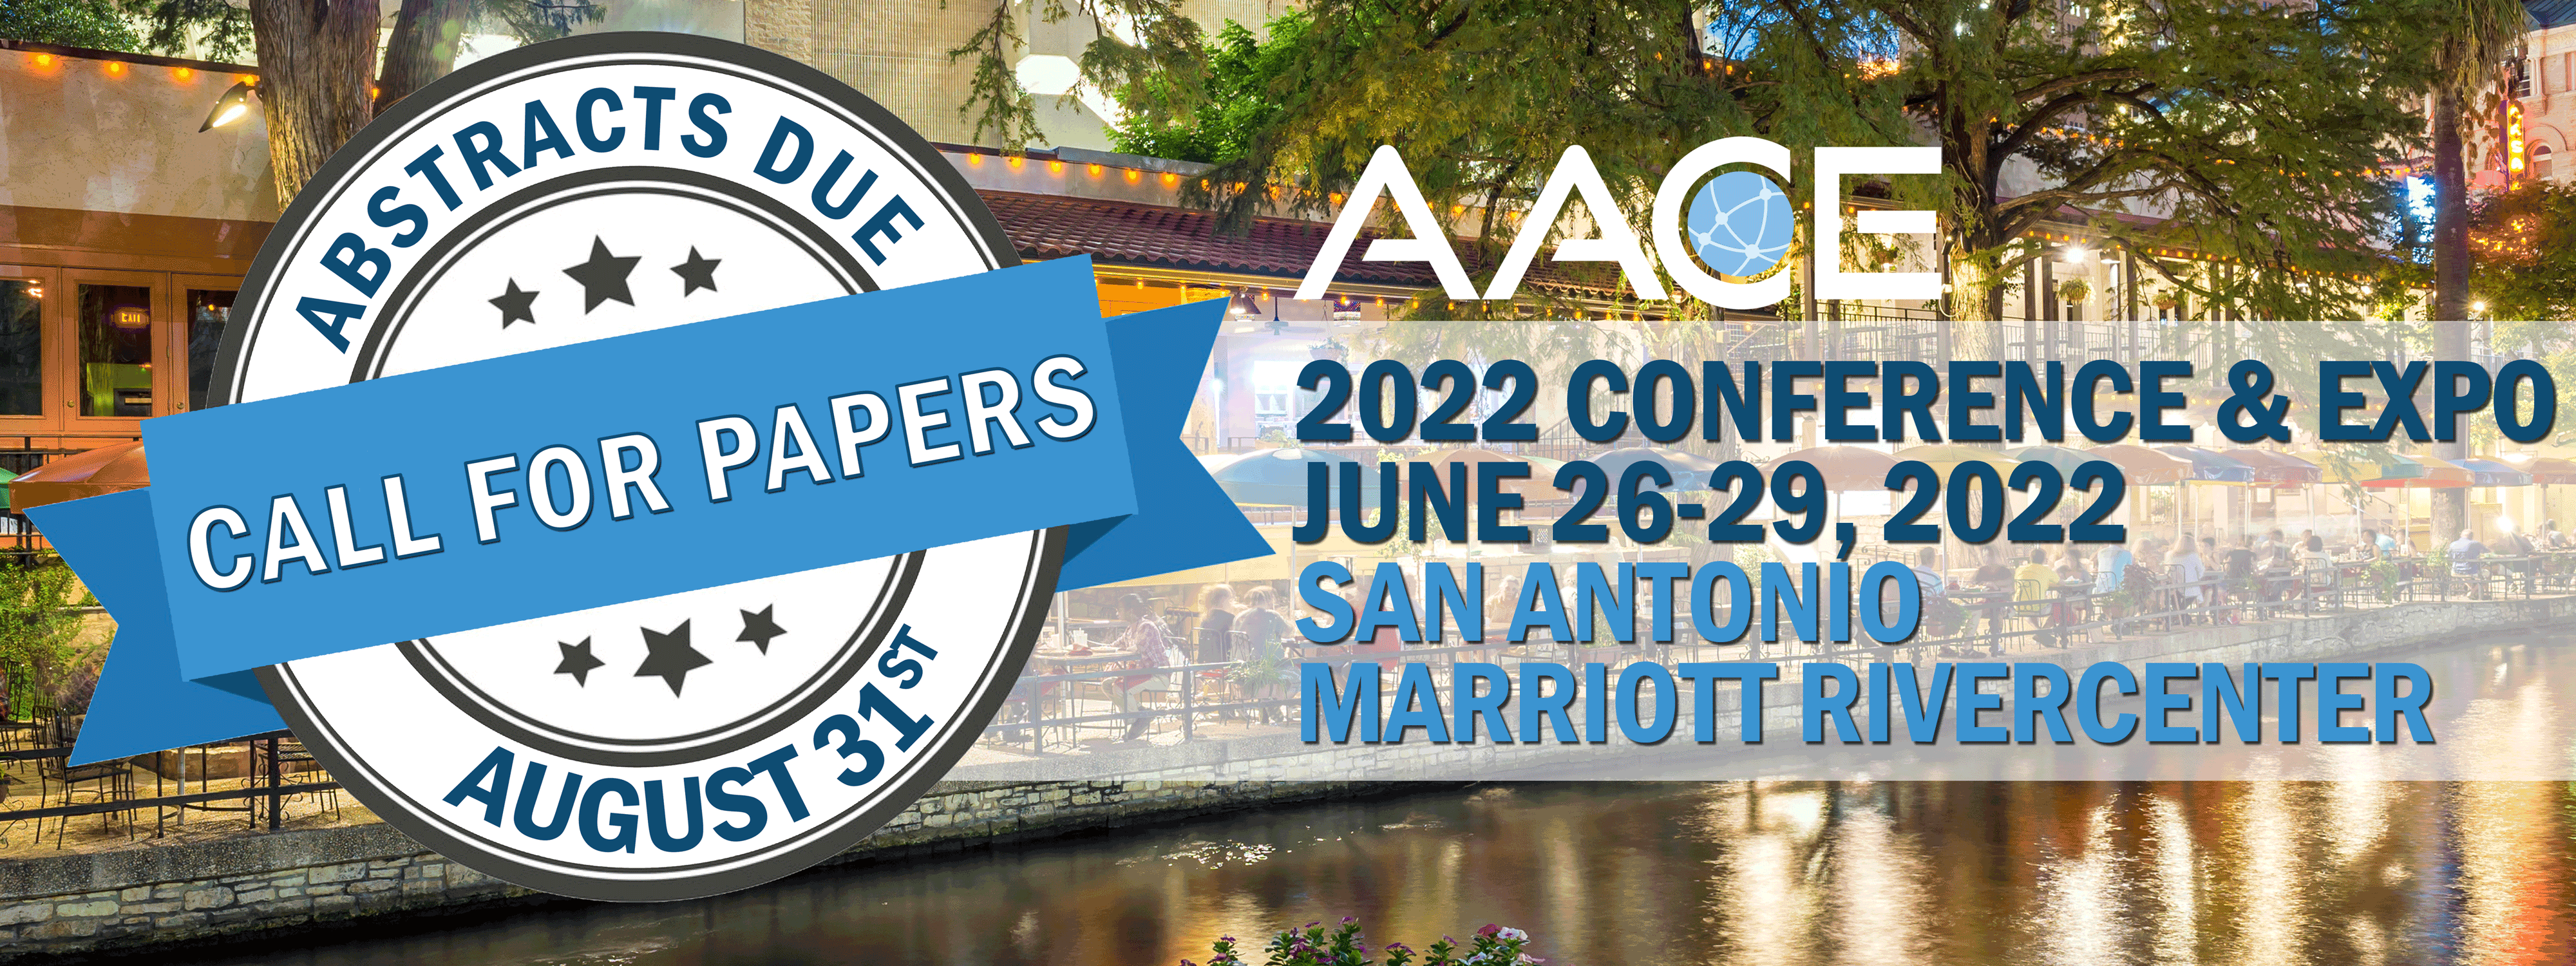 2022 Call for Papers